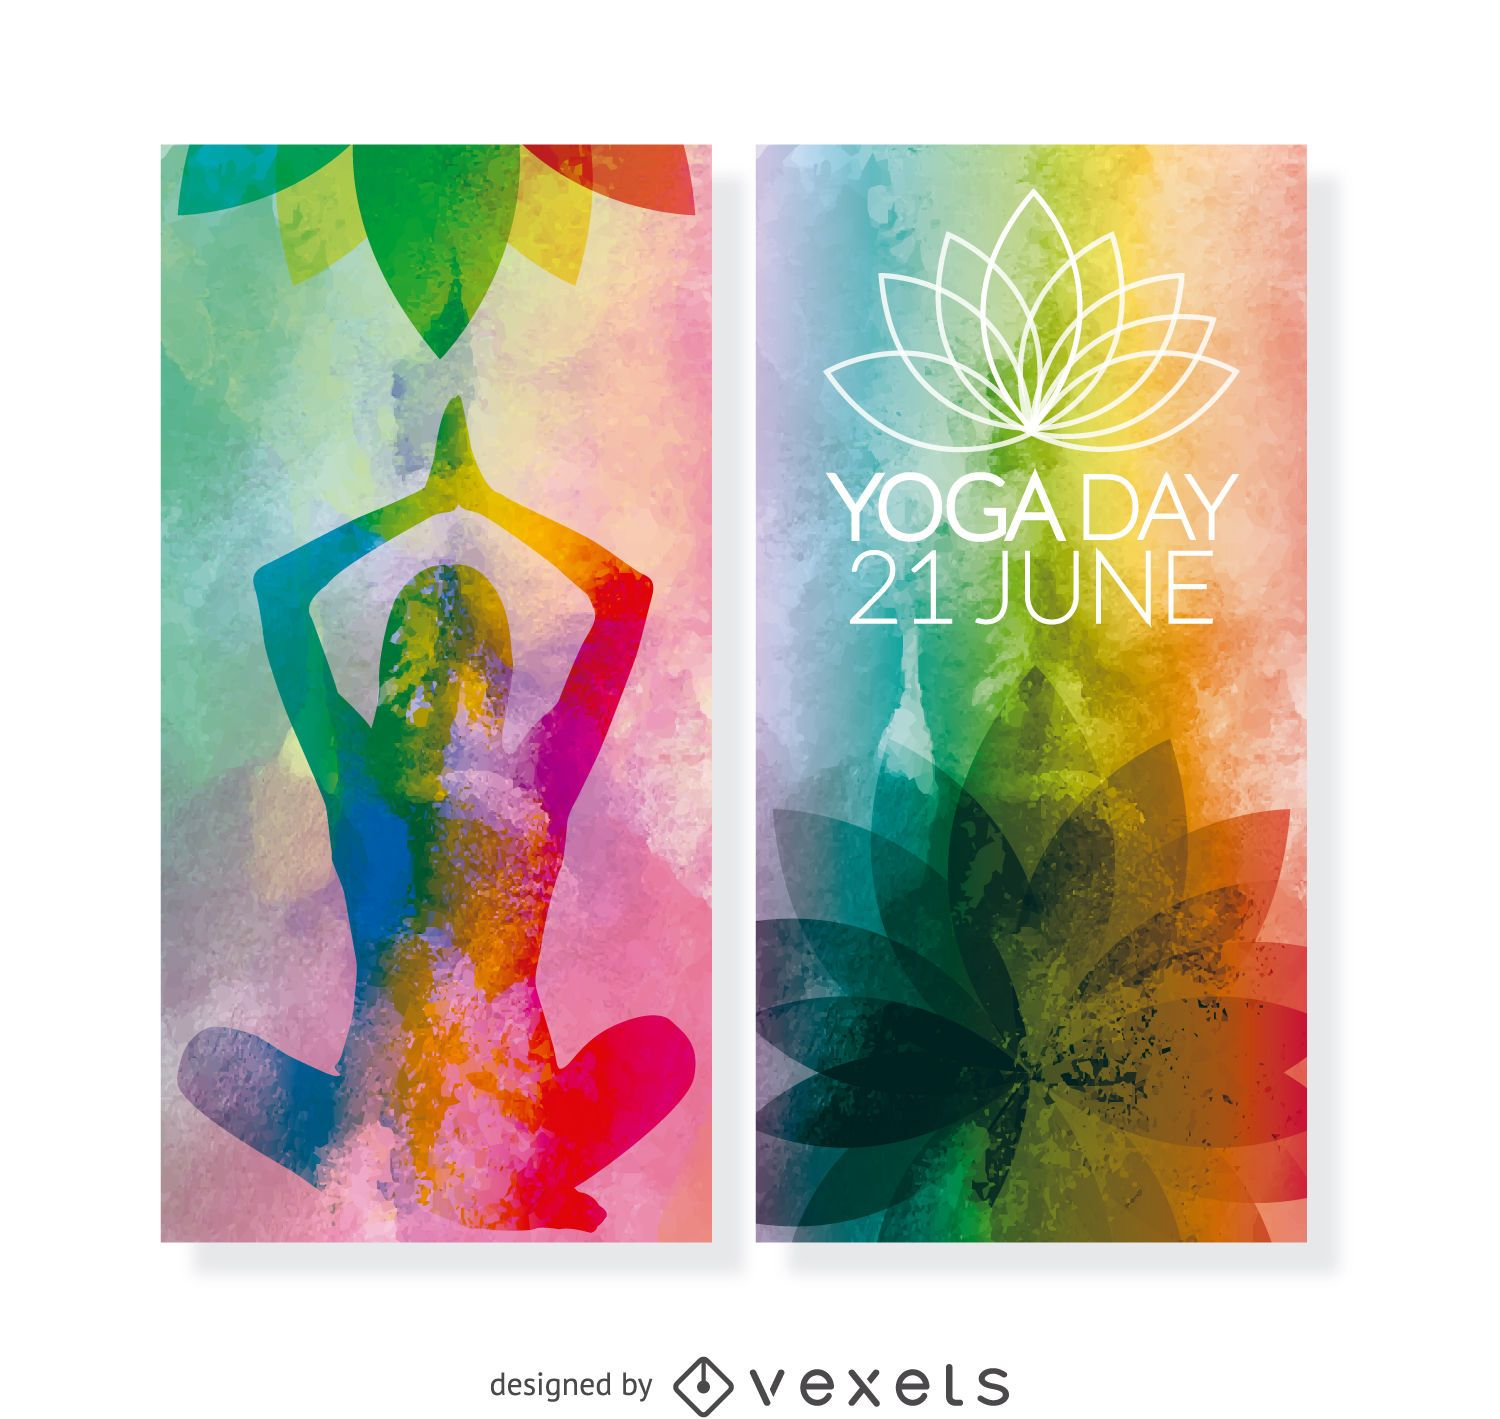 2 Yoga Day vertical banners